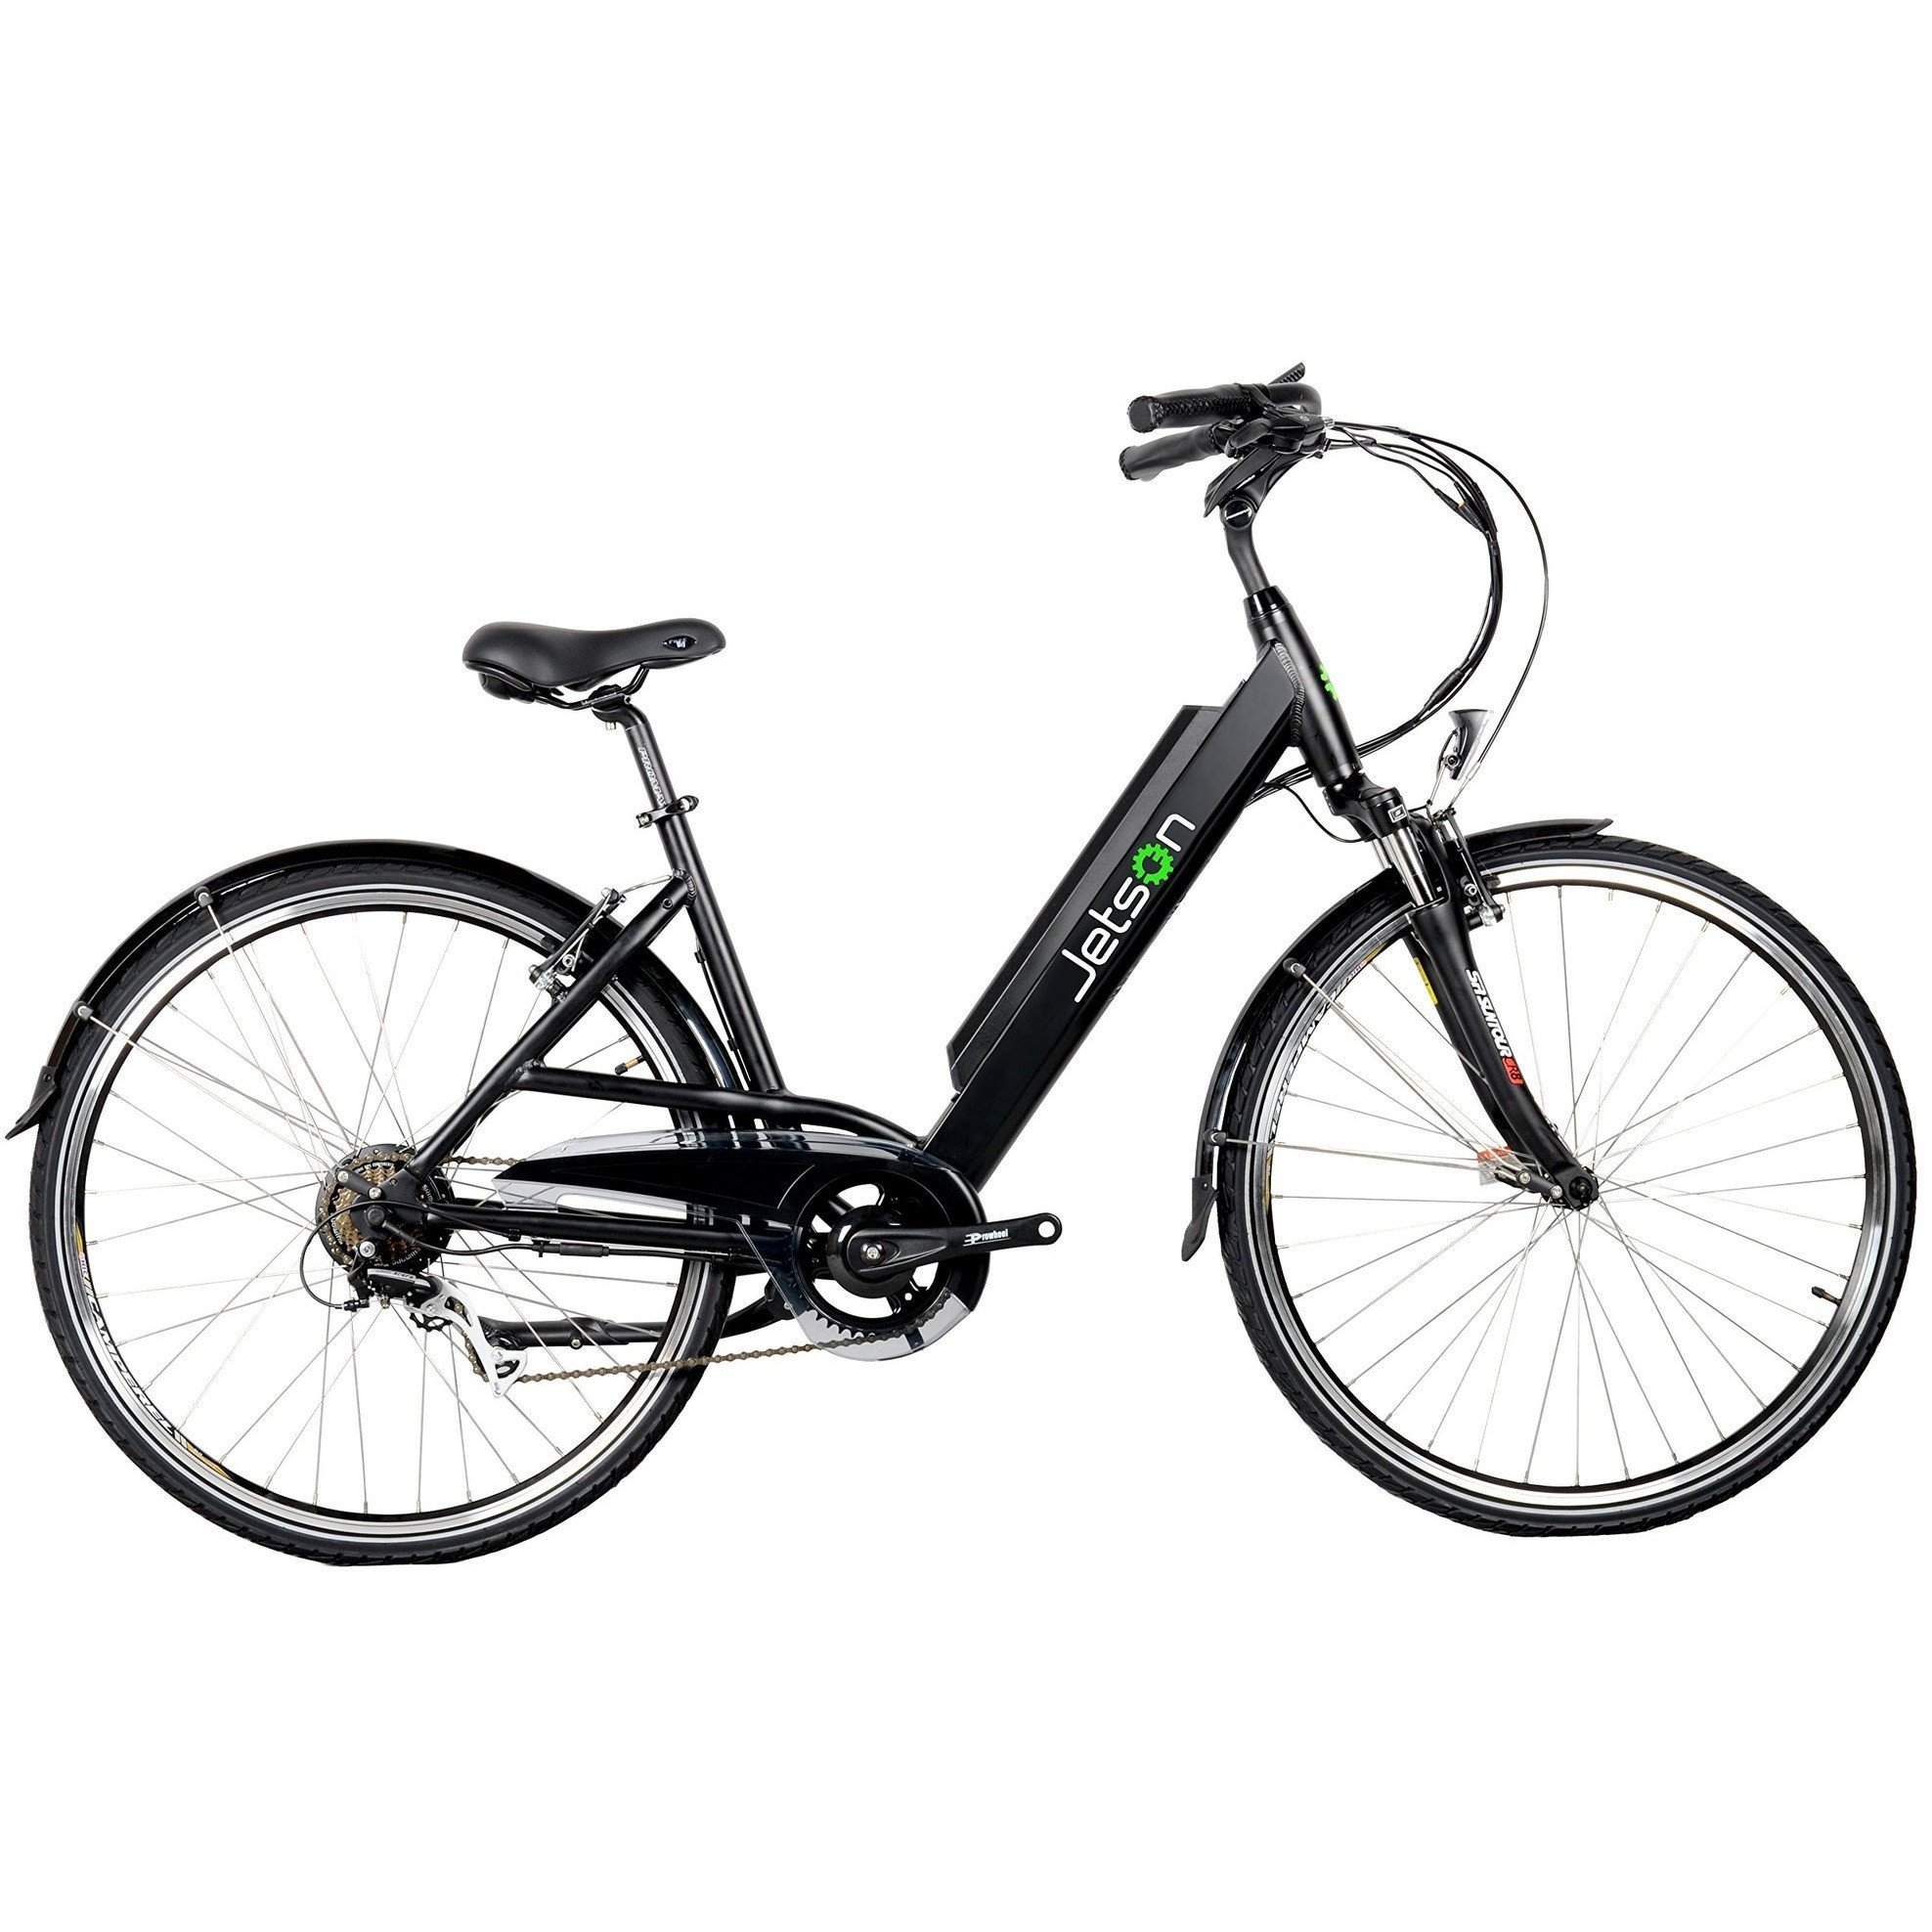 Jetson Rose 36v Electric City Bike Best Electric Bikes Bicycle